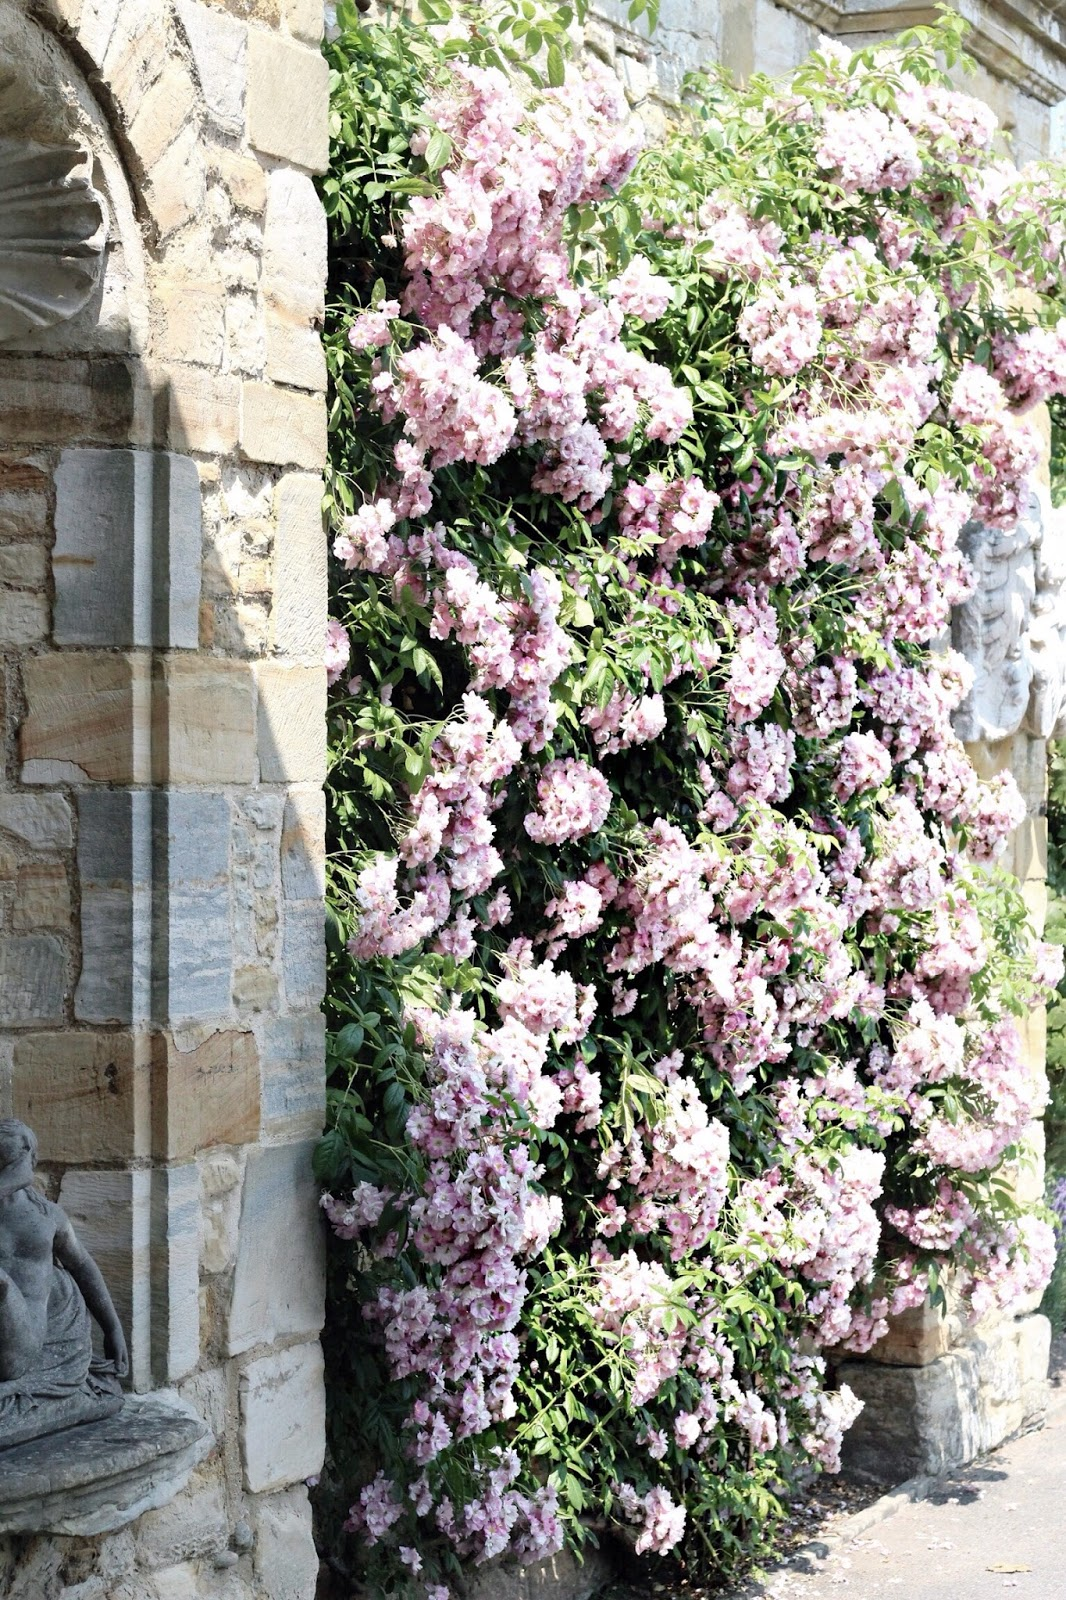 Mass of Pretty Pink Flowers on Wall